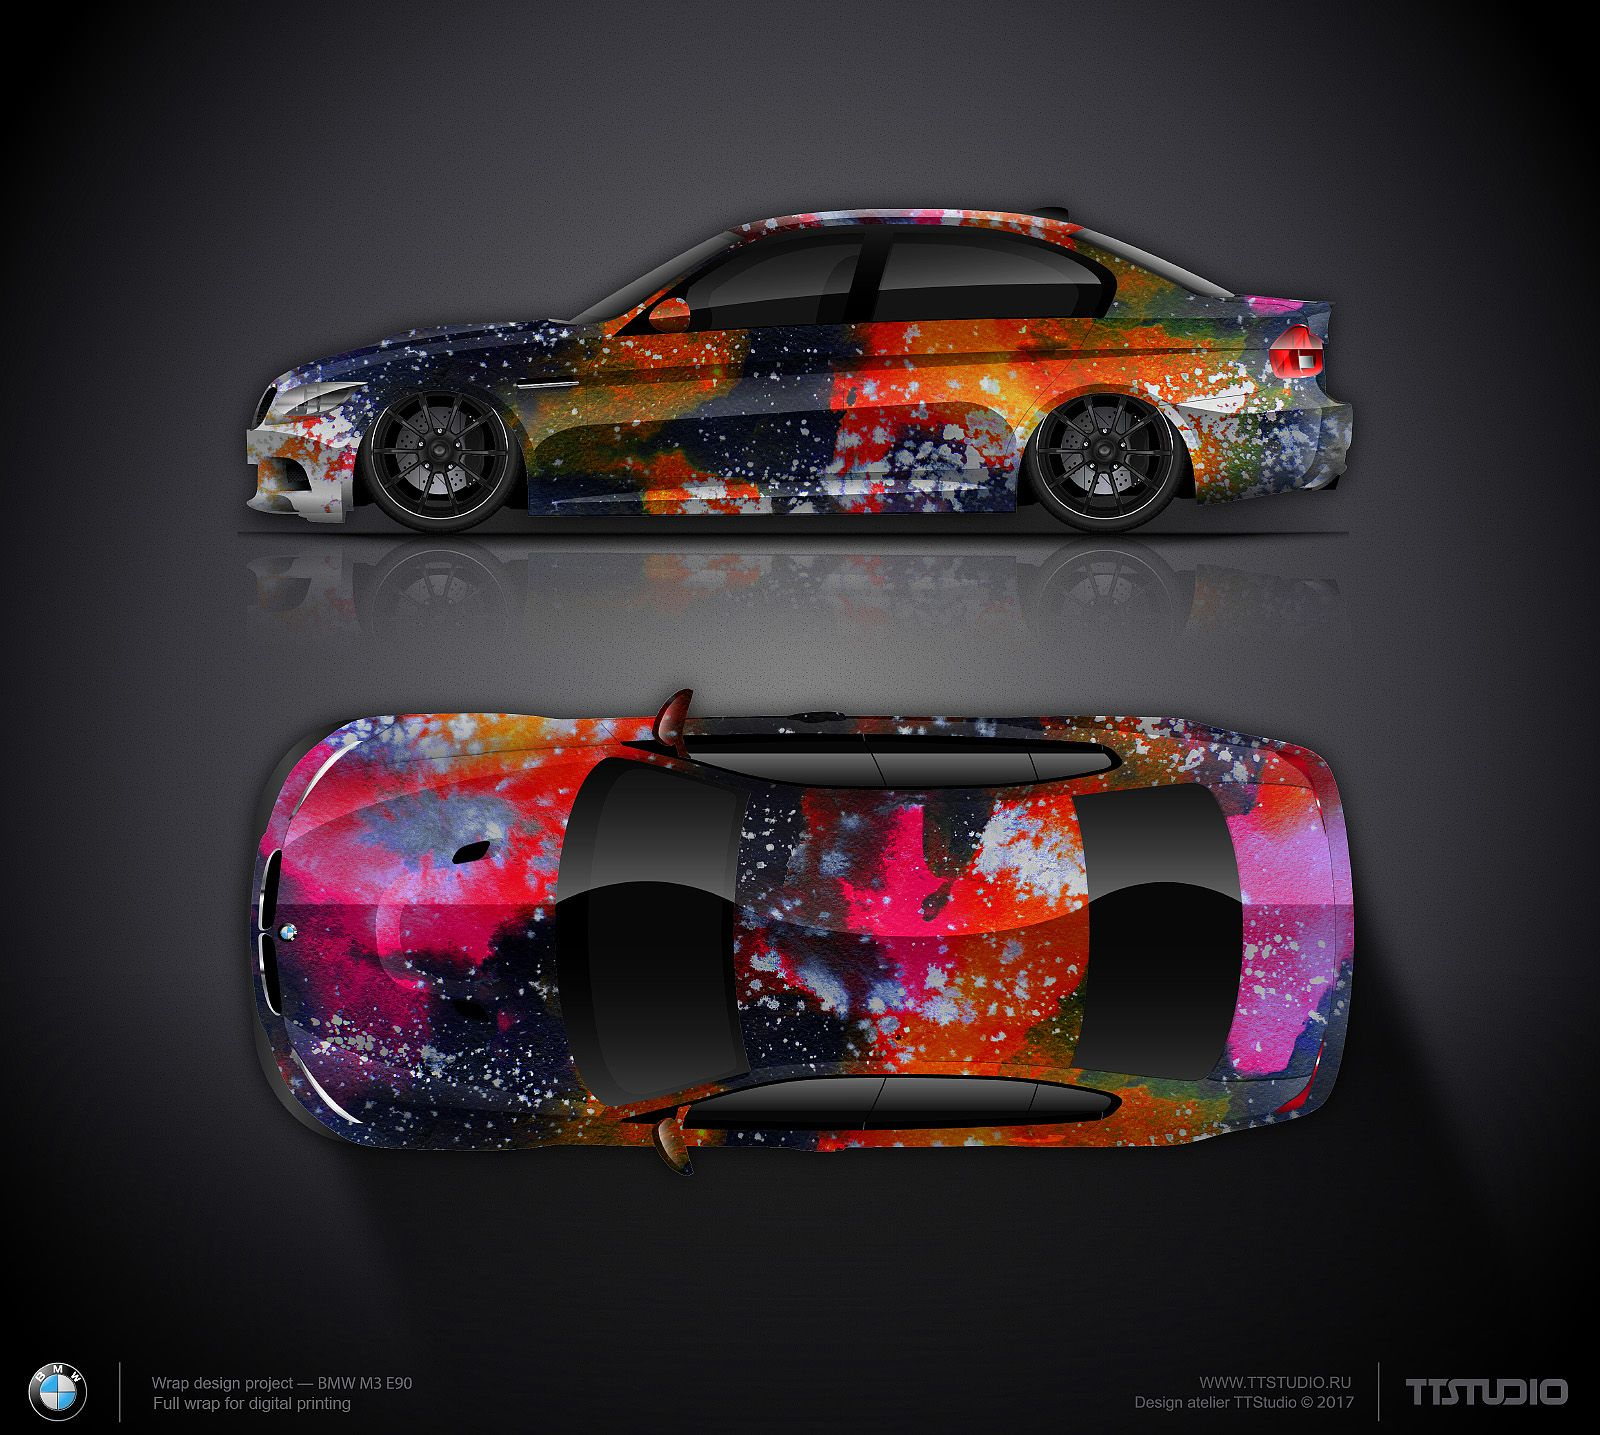 Art Wrap Design Concept 5 For Bmw M3 Car Wrap Design